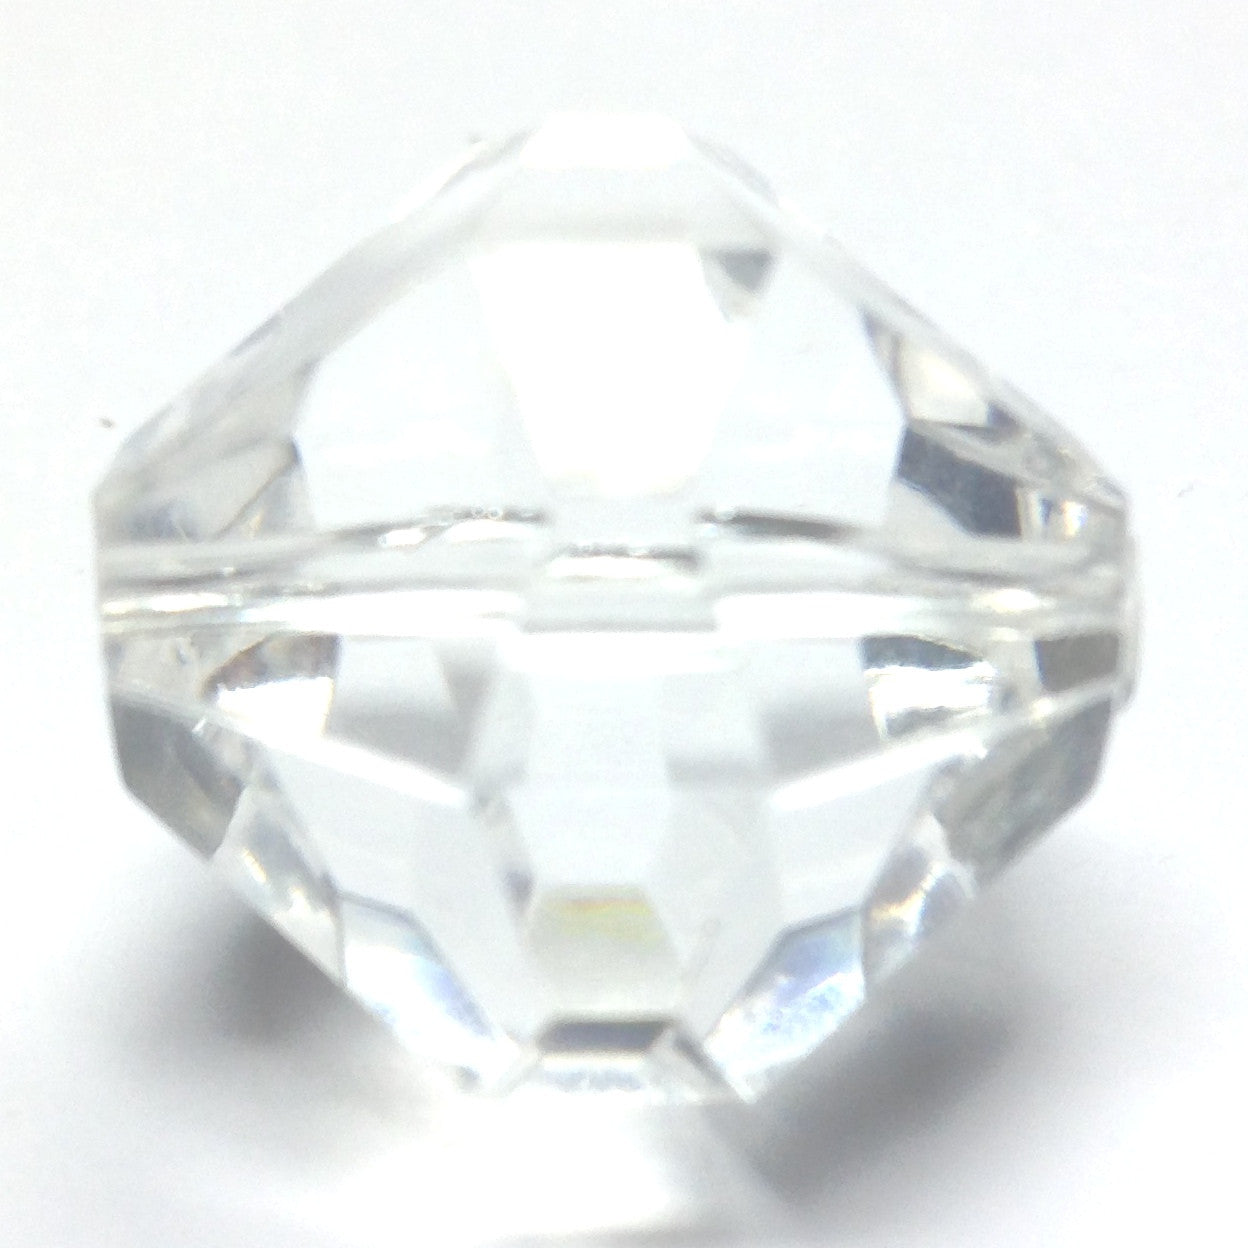 12MM Crystal Faceted Bead (100 pieces)